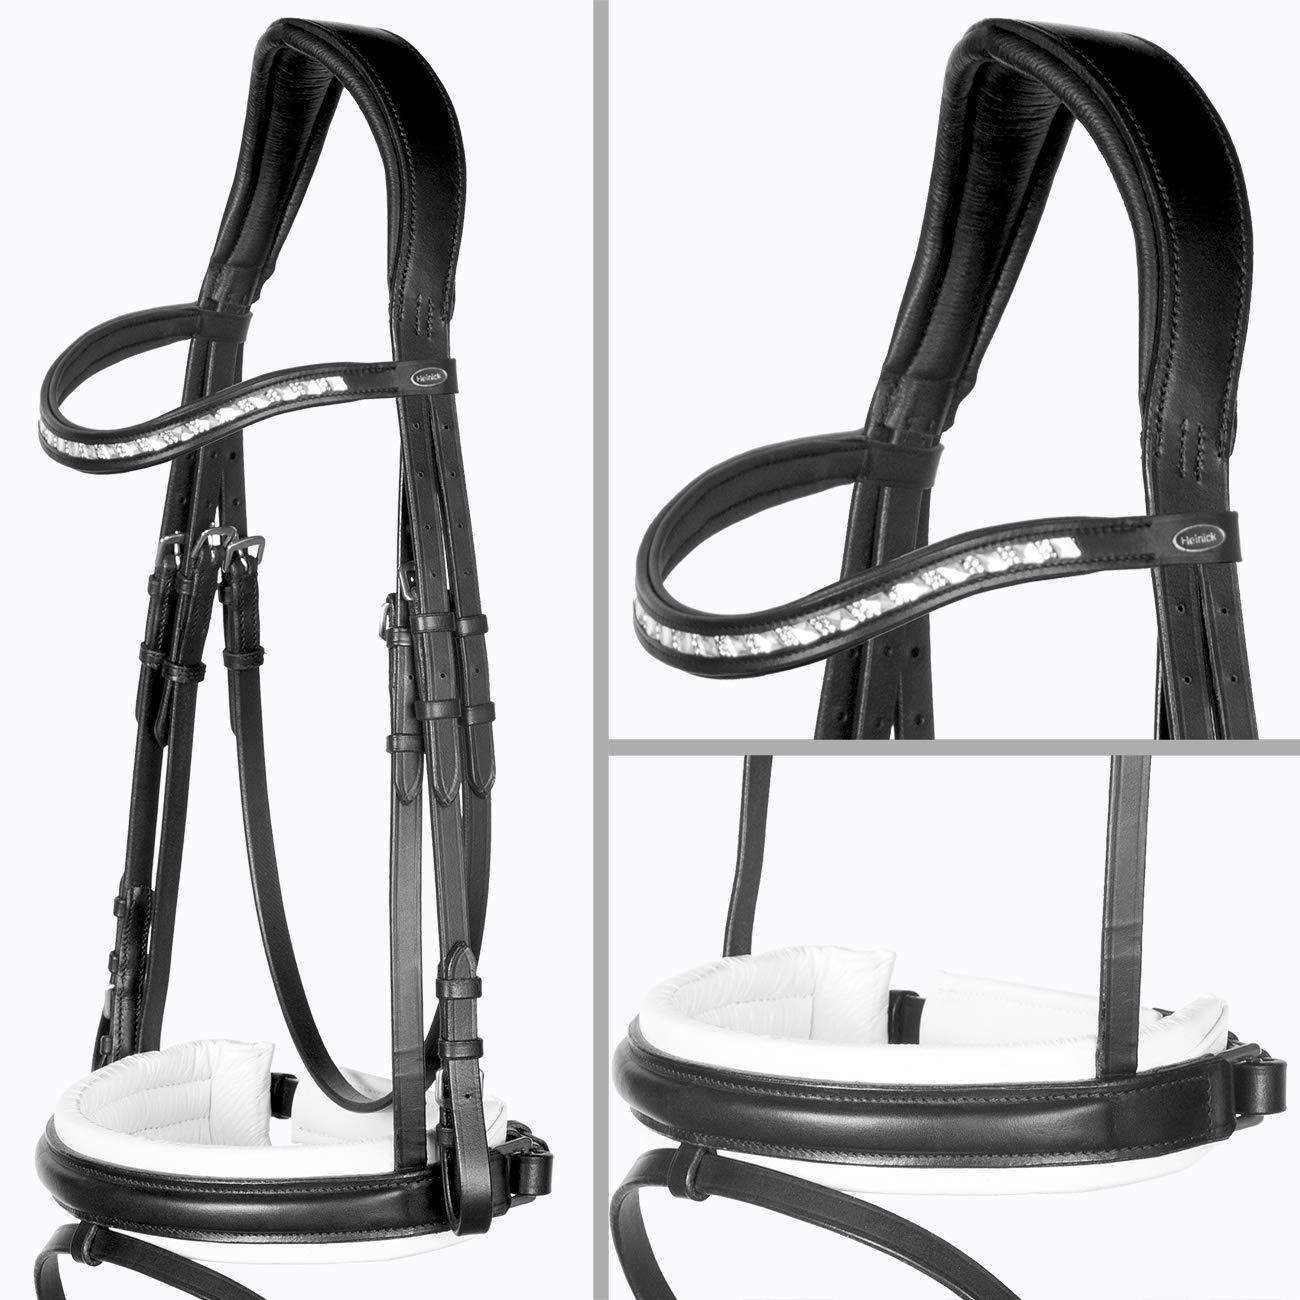 Warmbluet   Full Heinick Equestrian Fine Zarin Black and White   Motion Snaffle Bridle Extra-Wide RH Warmblood Horses